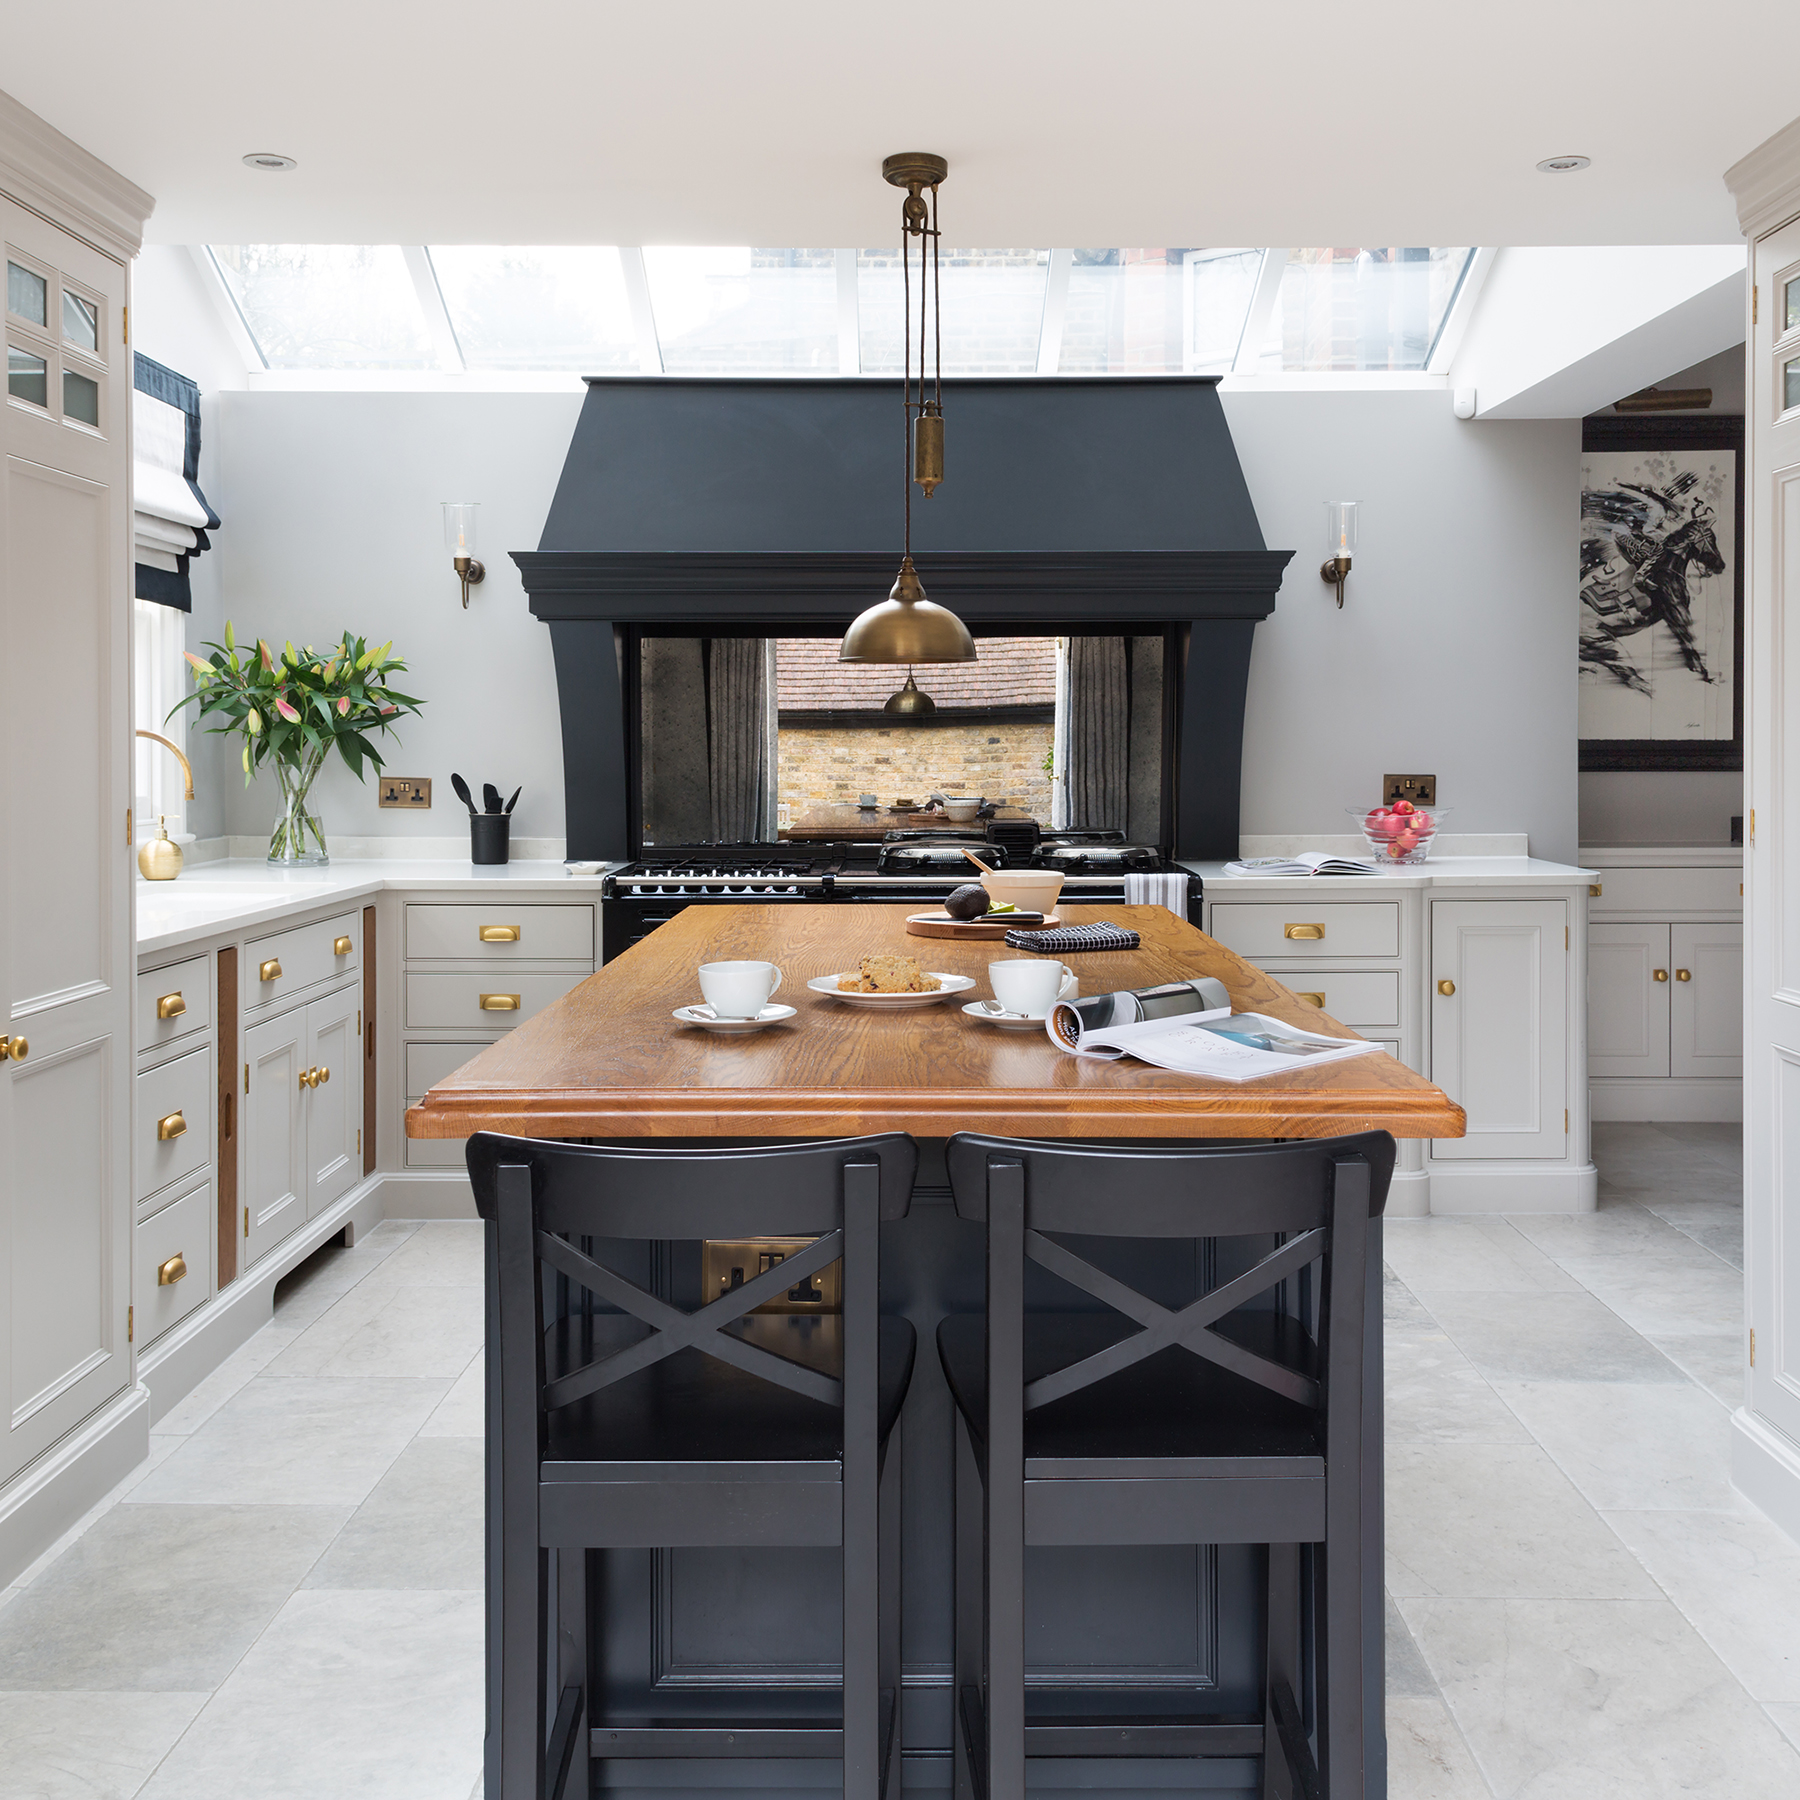 Luxury Bespoke Kitchen, Blackheath - Humphrey Munson